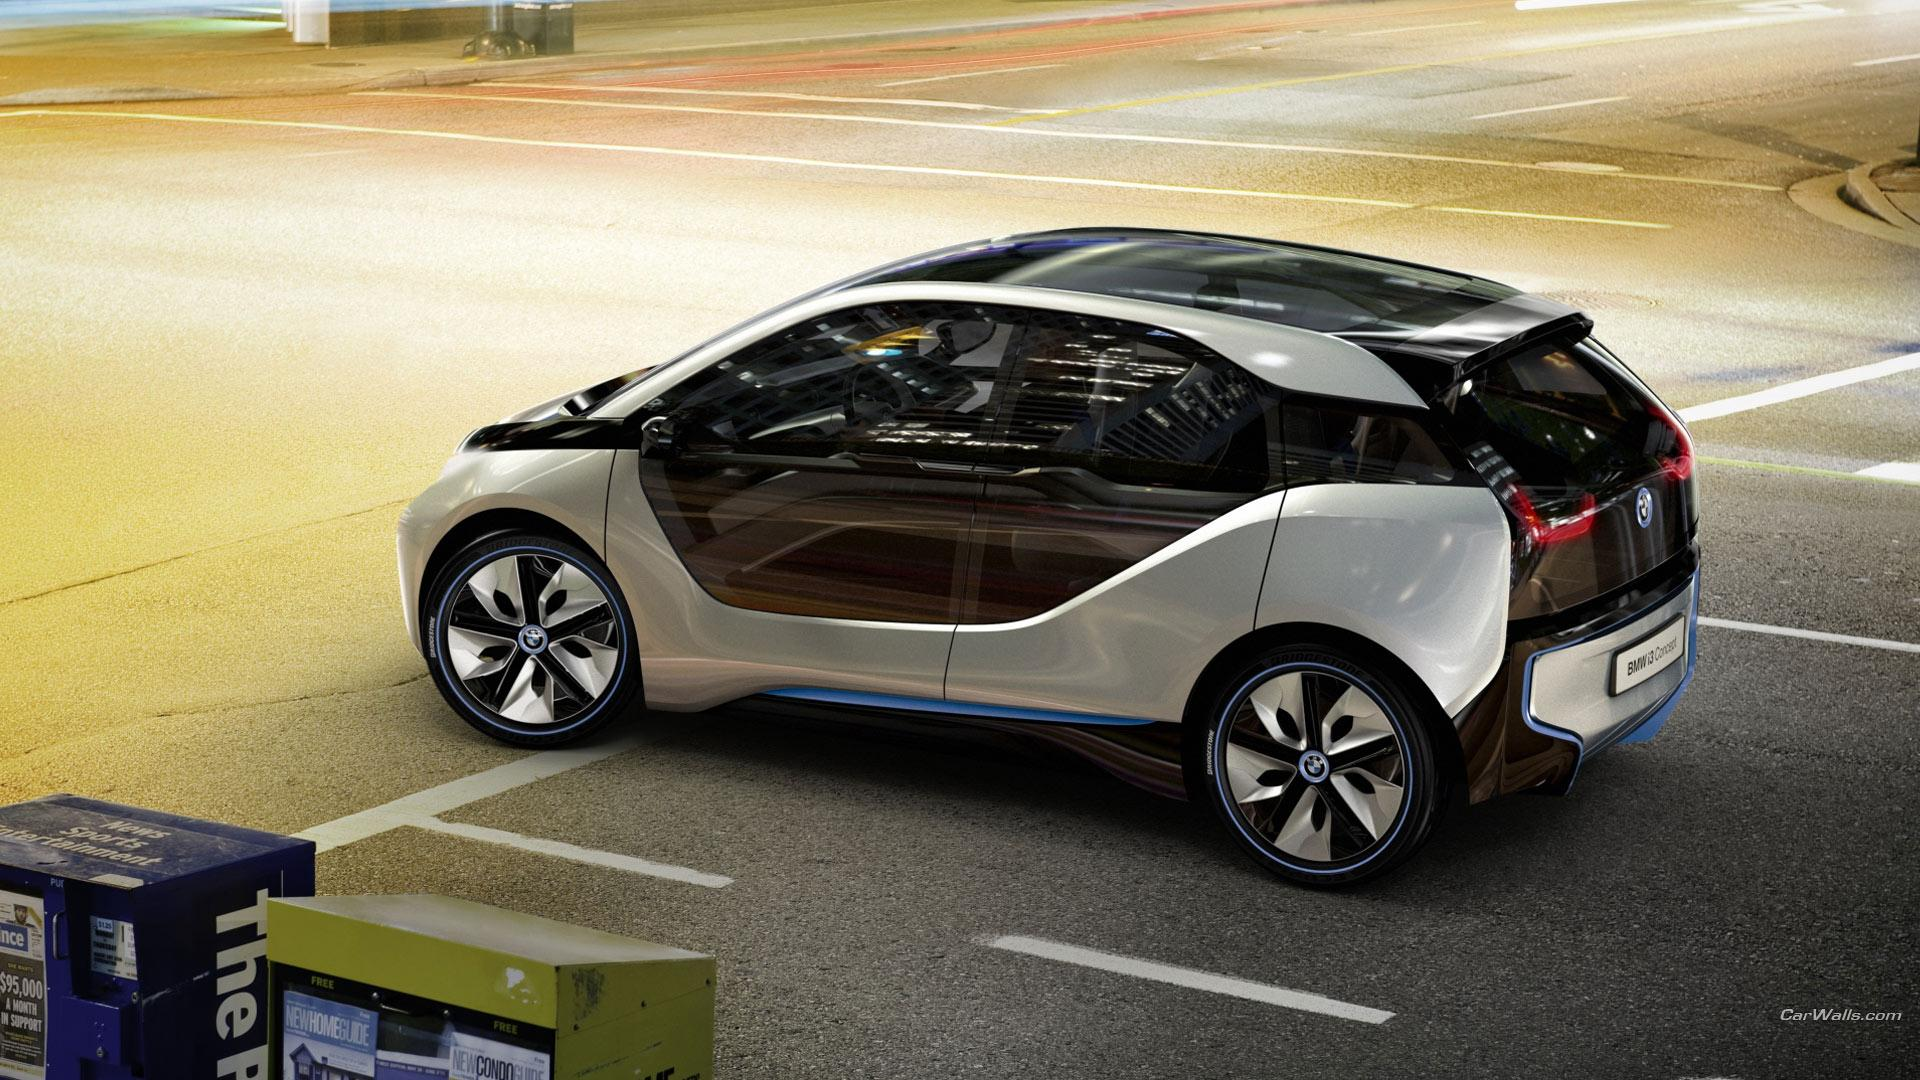 1920x1080 - BMW i3 Concept Wallpapers 31